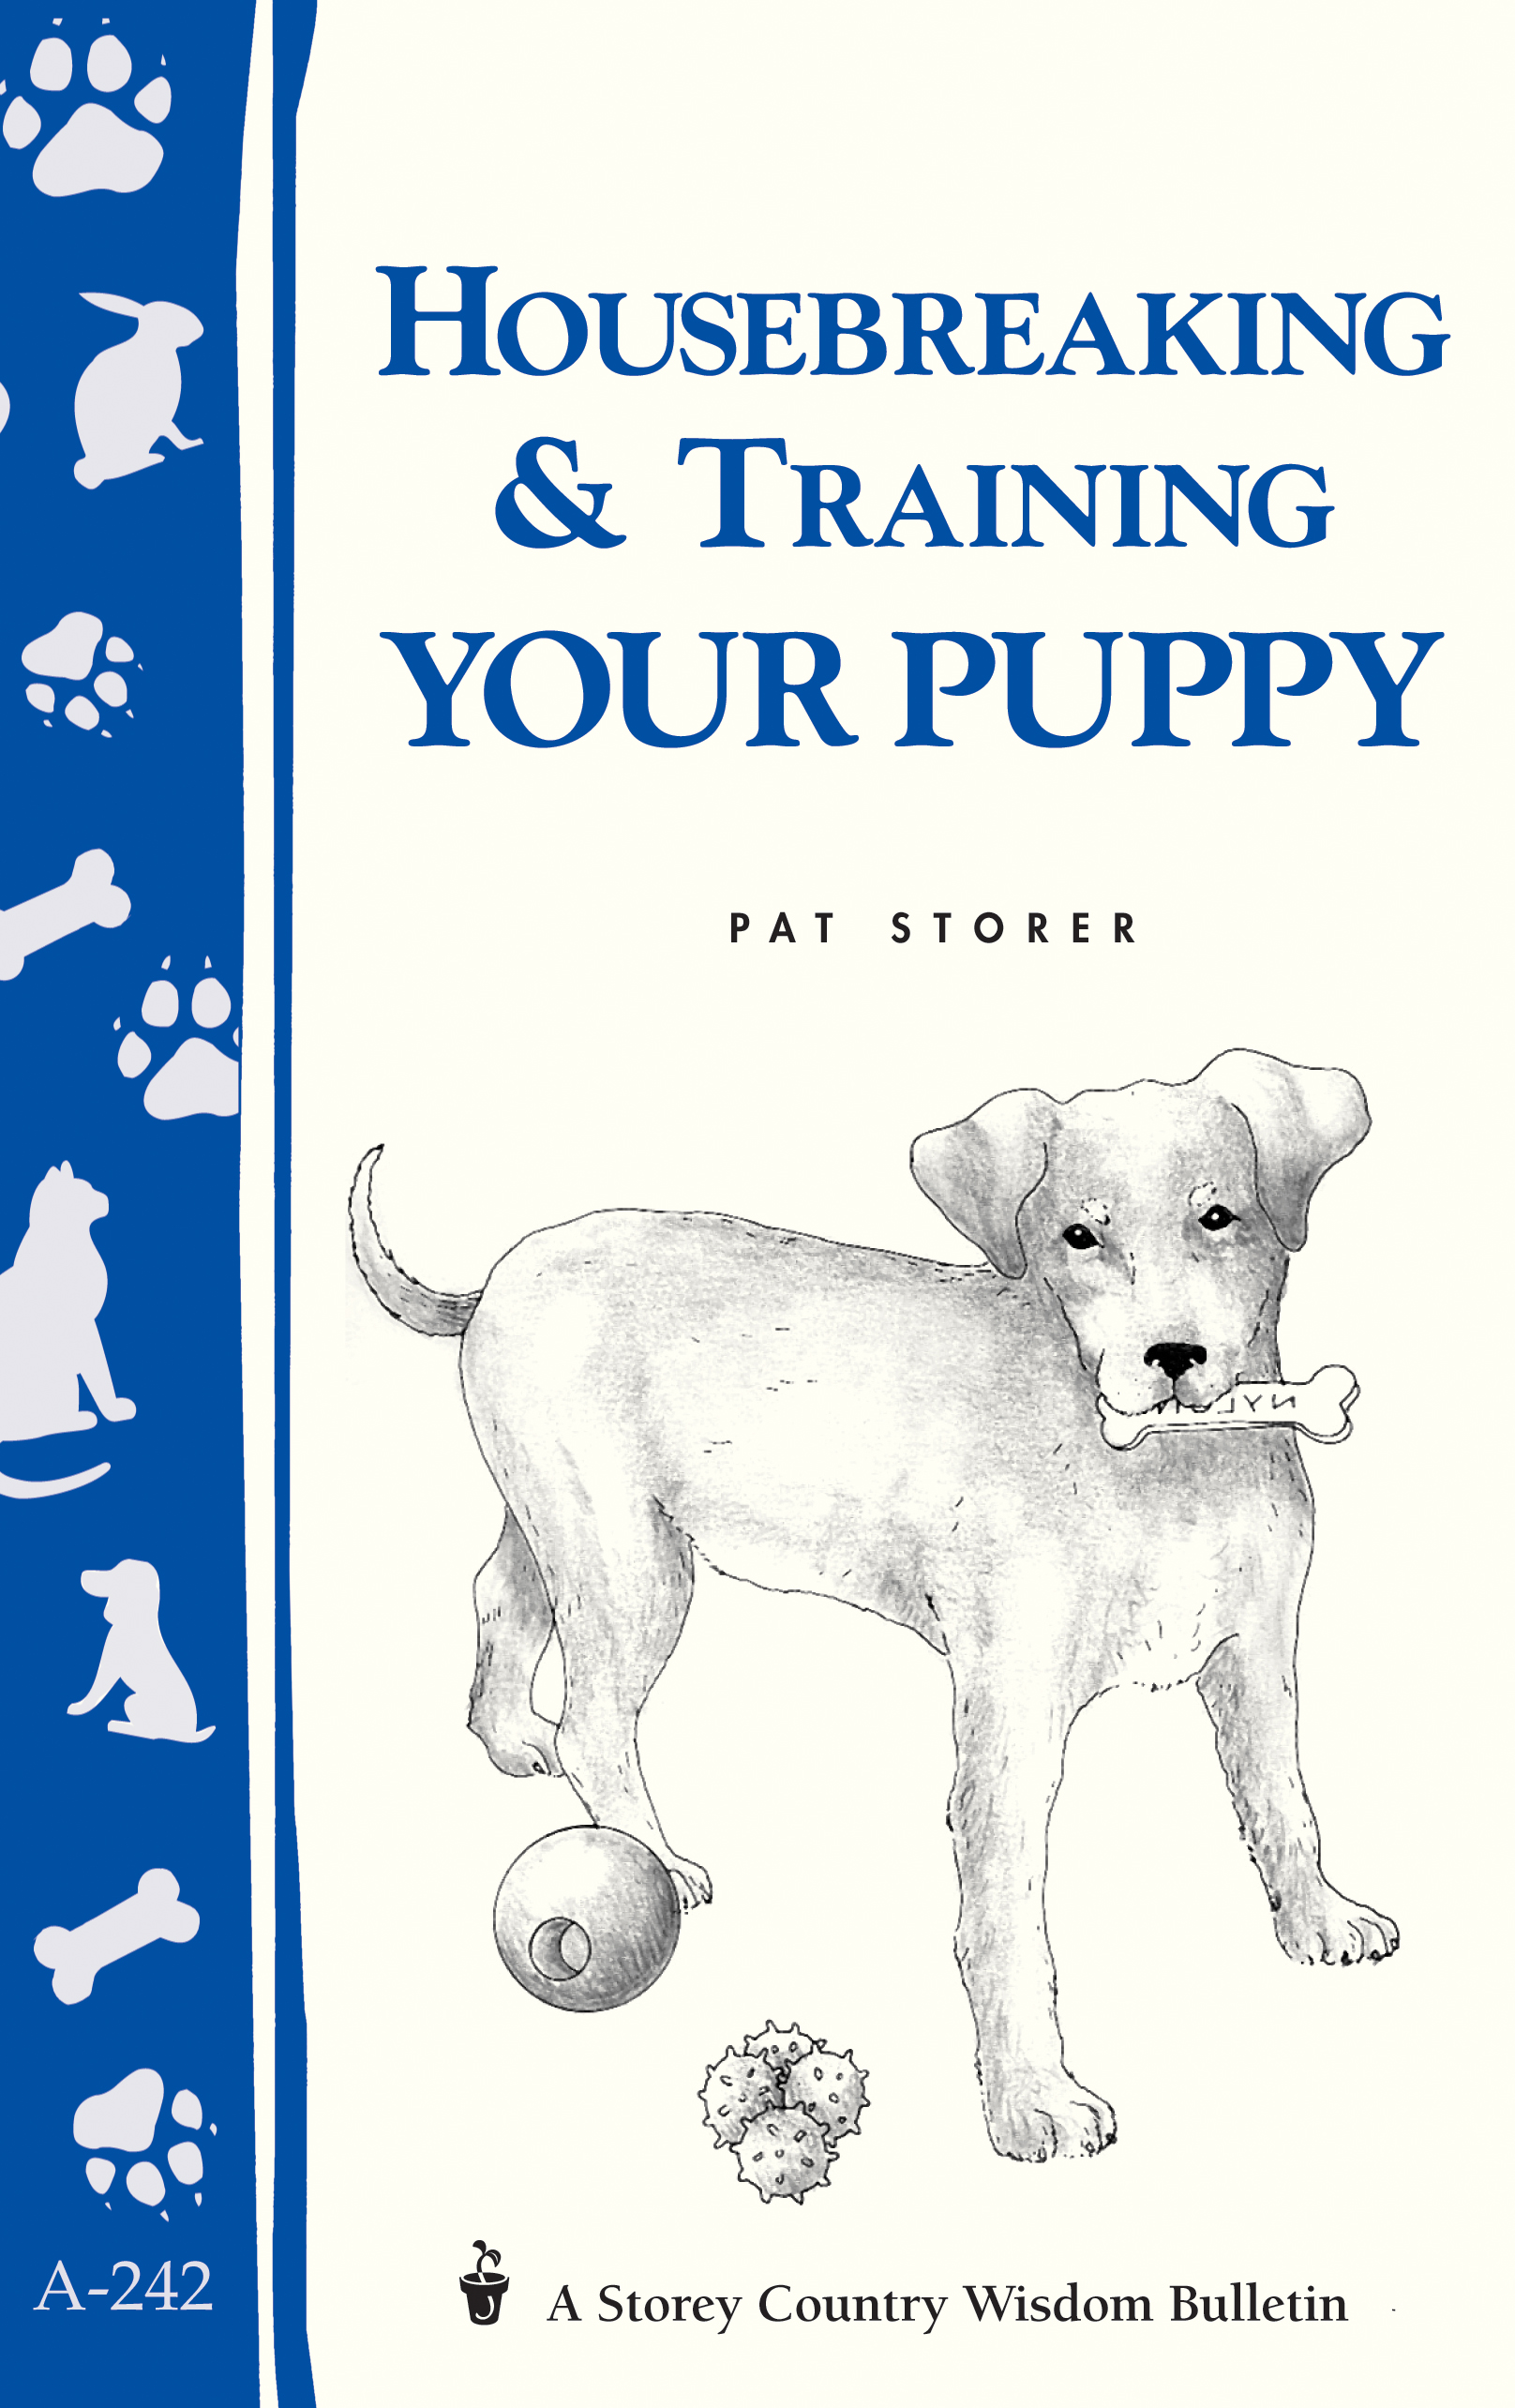 Housebreaking & Training Your Puppy Storey's Country Wisdom Bulletin A-242 - Pat Storer